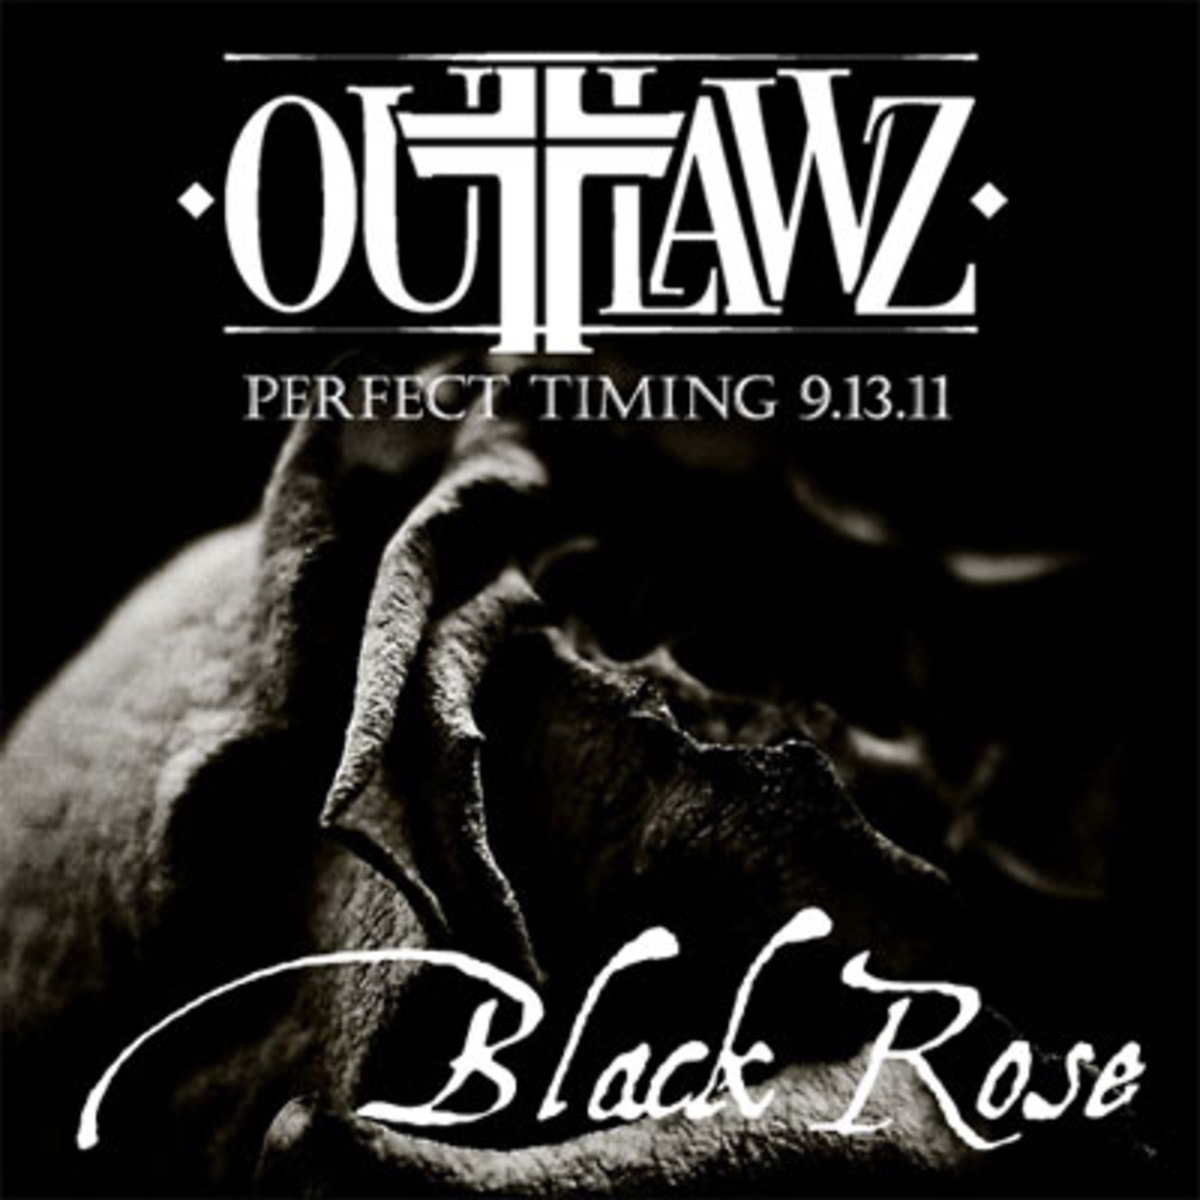 outlawz-blackrose.jpg